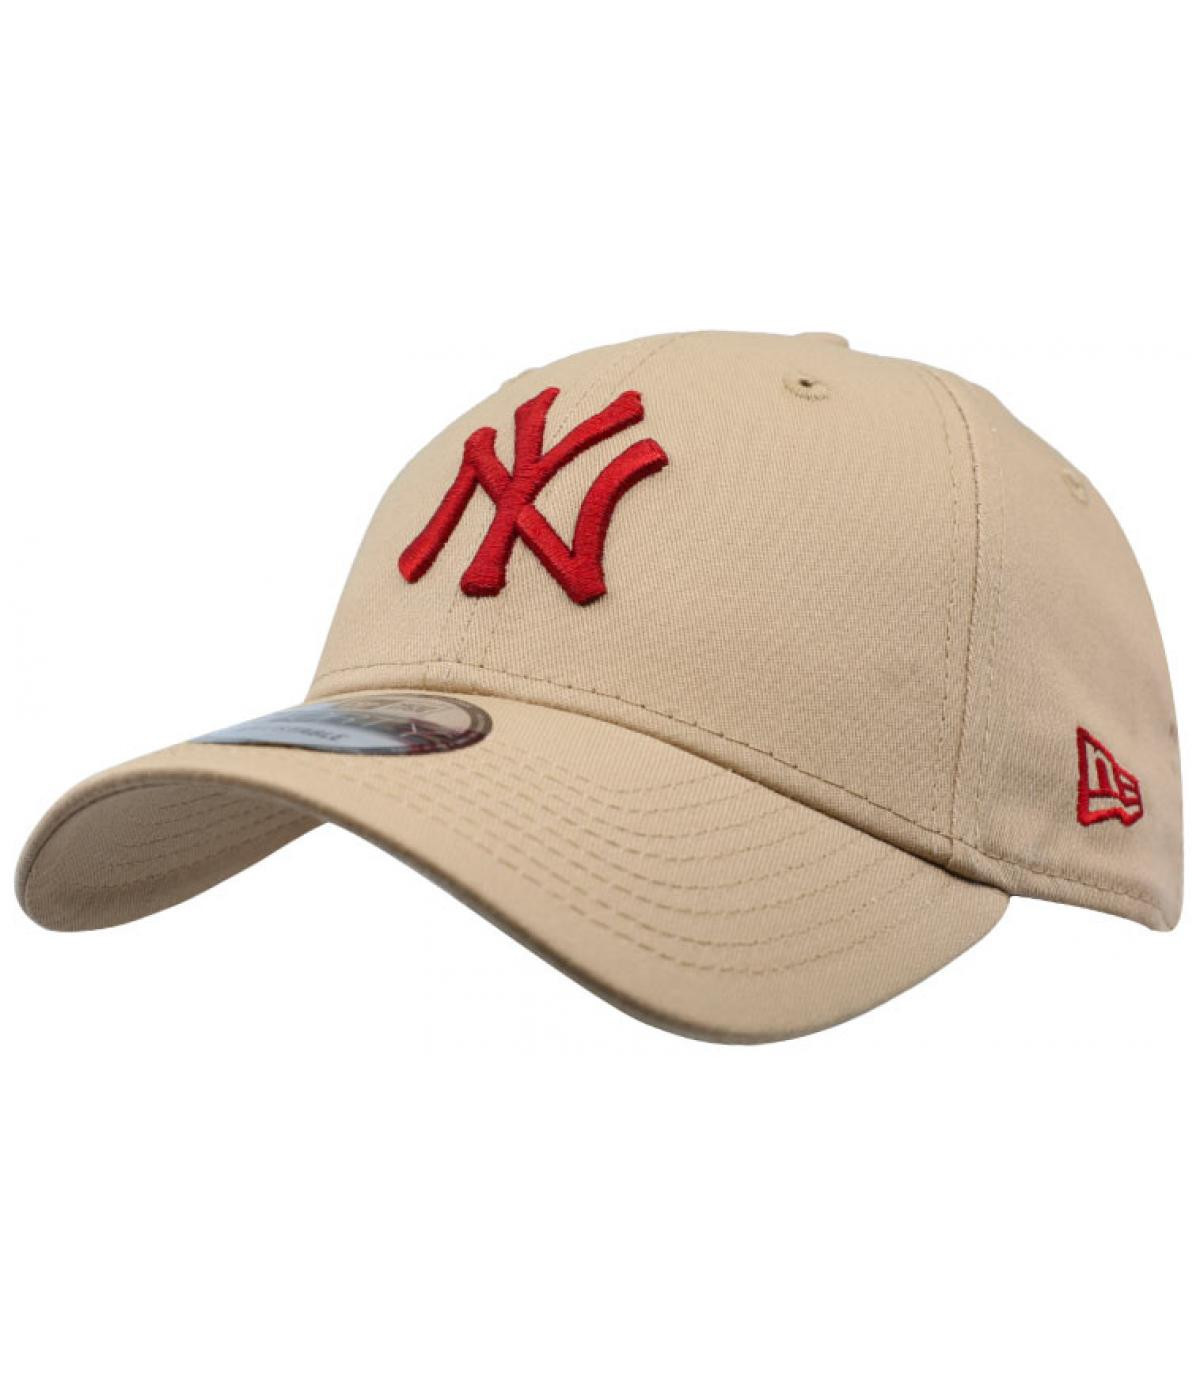 Détails Kids League Ess NY 9Forty camel hot red - image 2